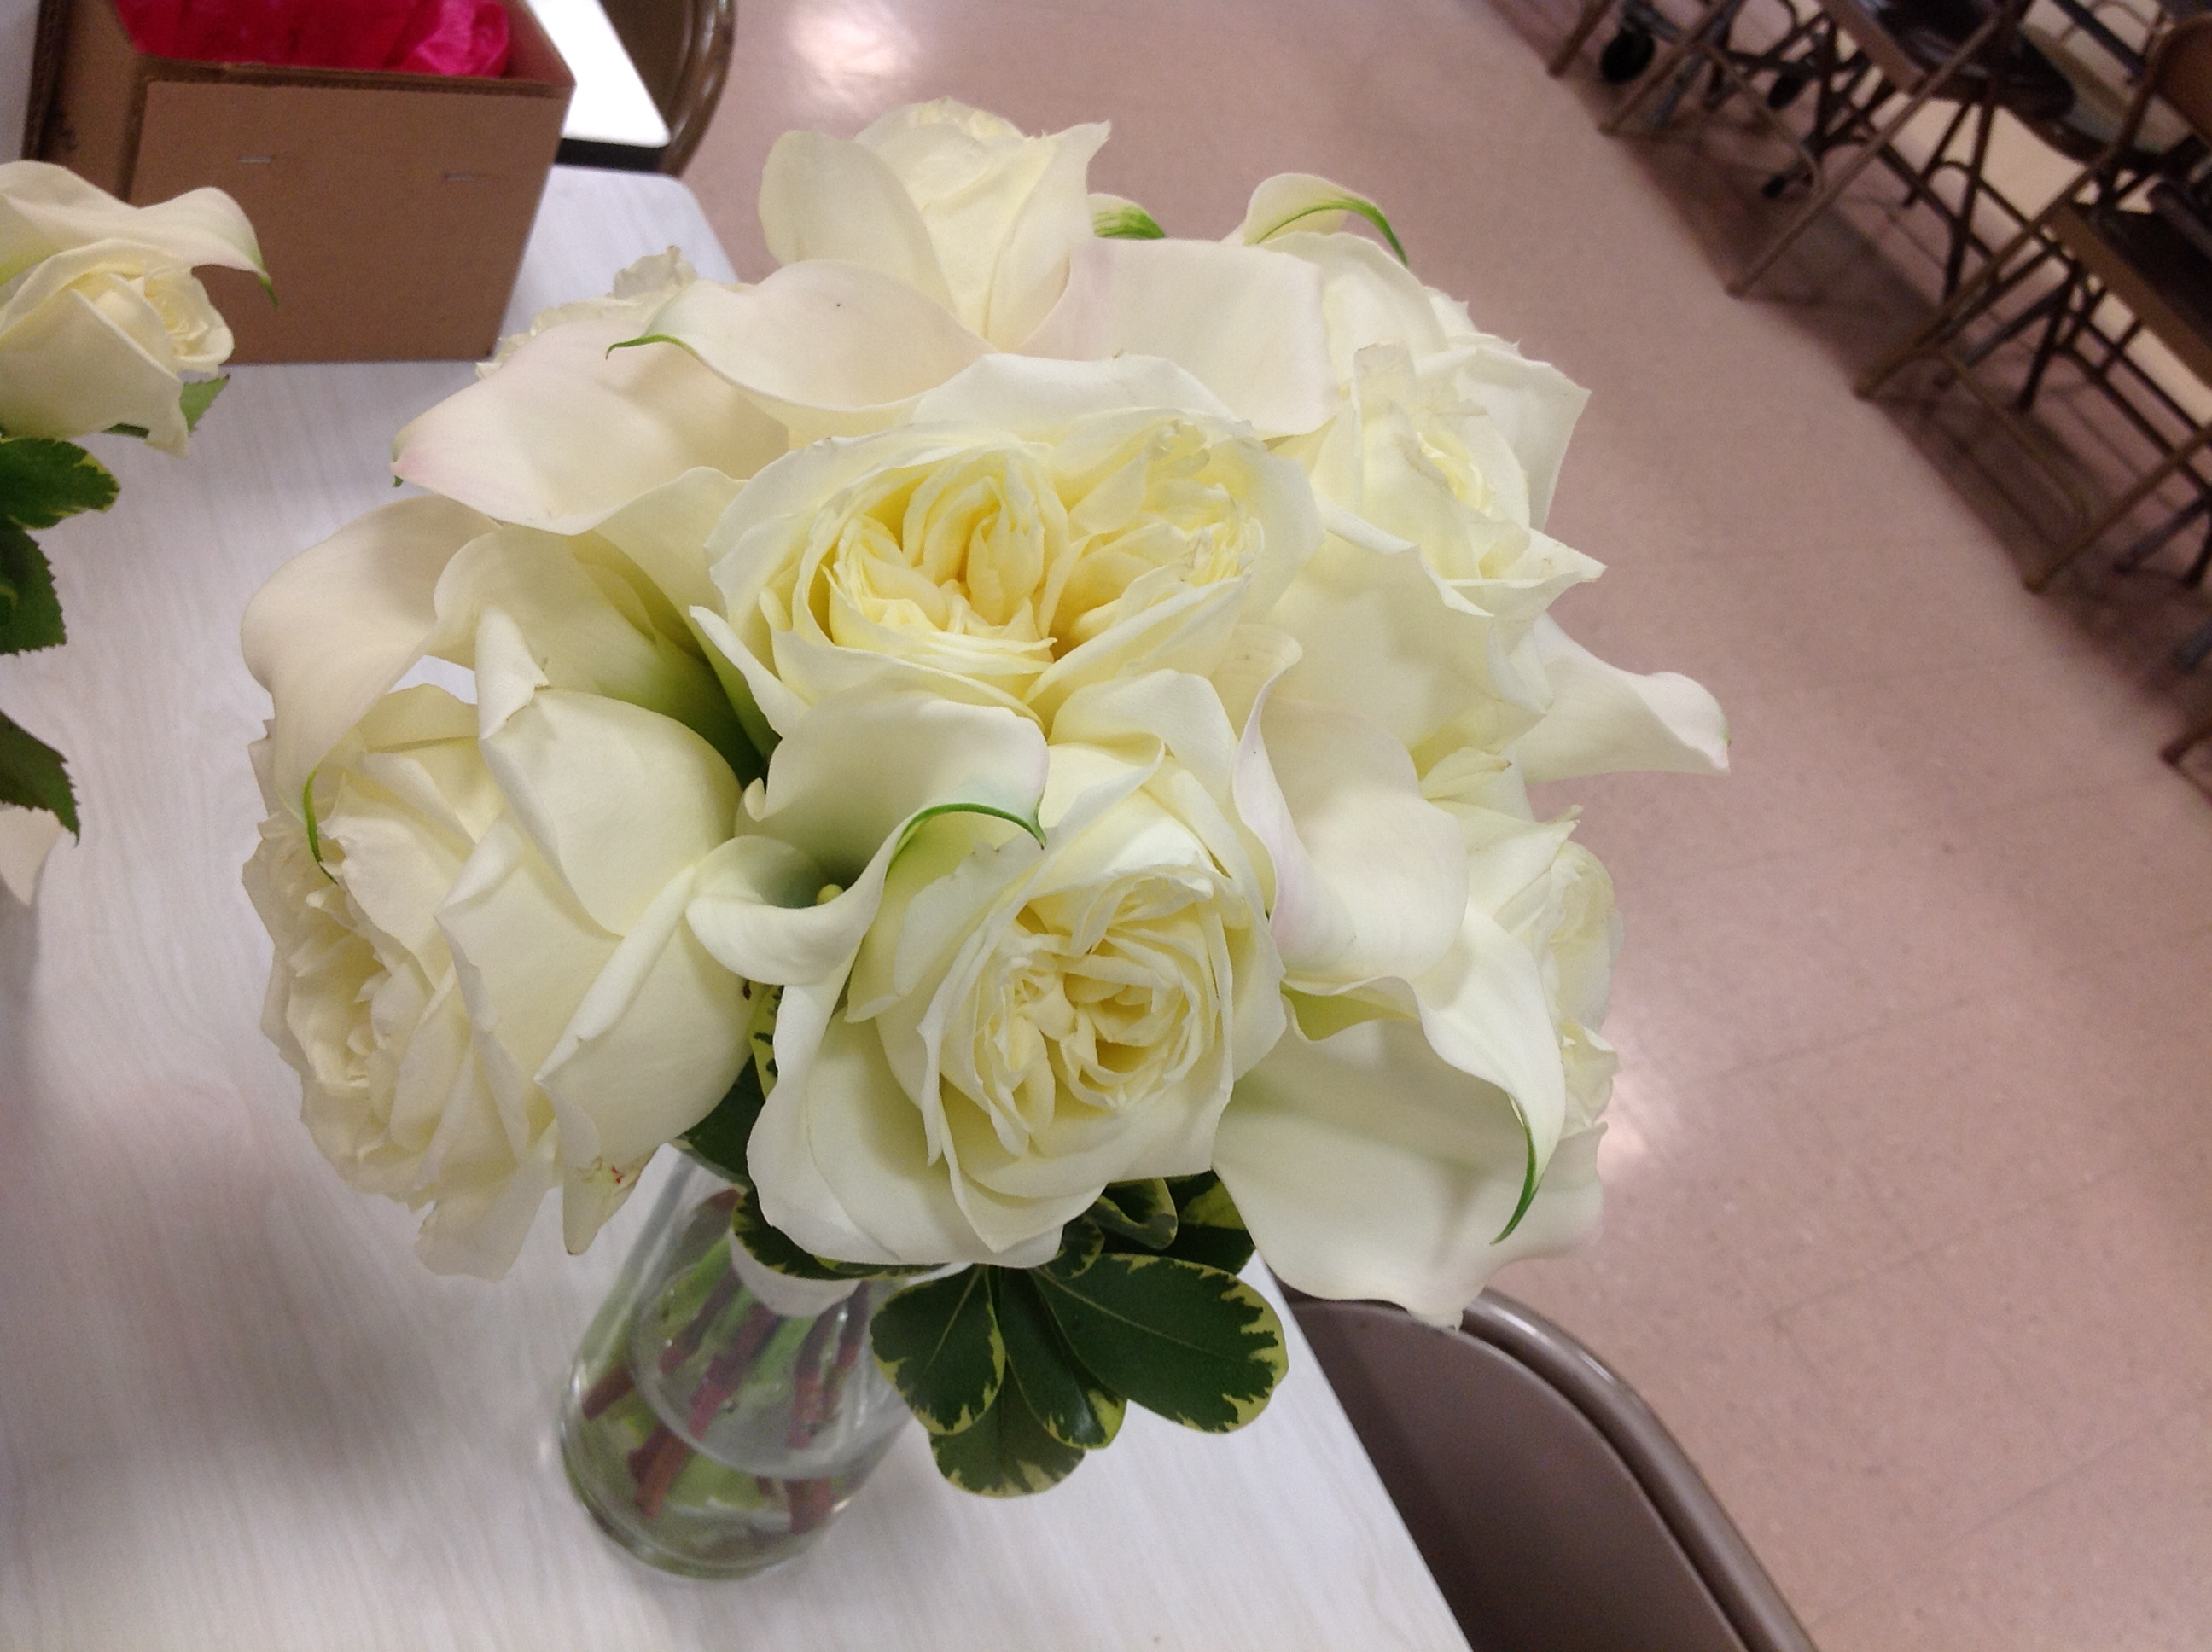 How To Use White Wedding Flowers Your Local Florist With Locations